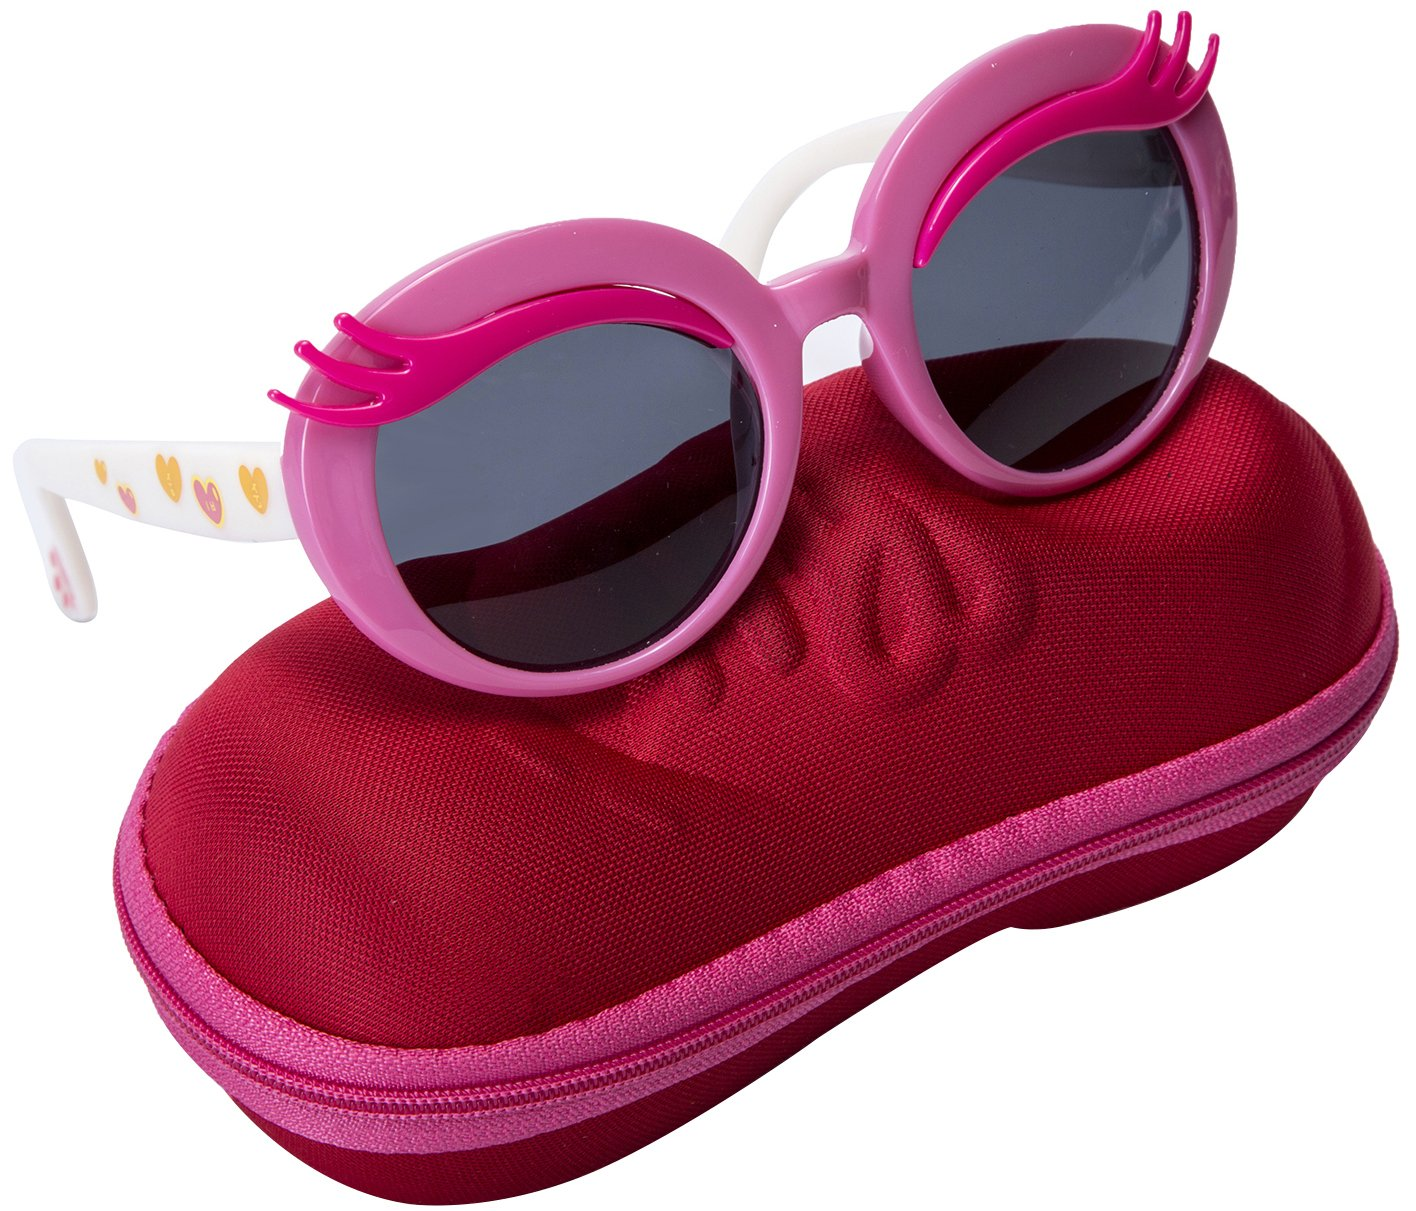 Comcl Girls Eyelash Polarized Sunglasses - UV Protection Kids Sunglasses 45mm Fit for Aged 4-9 With Shoe Shape Case